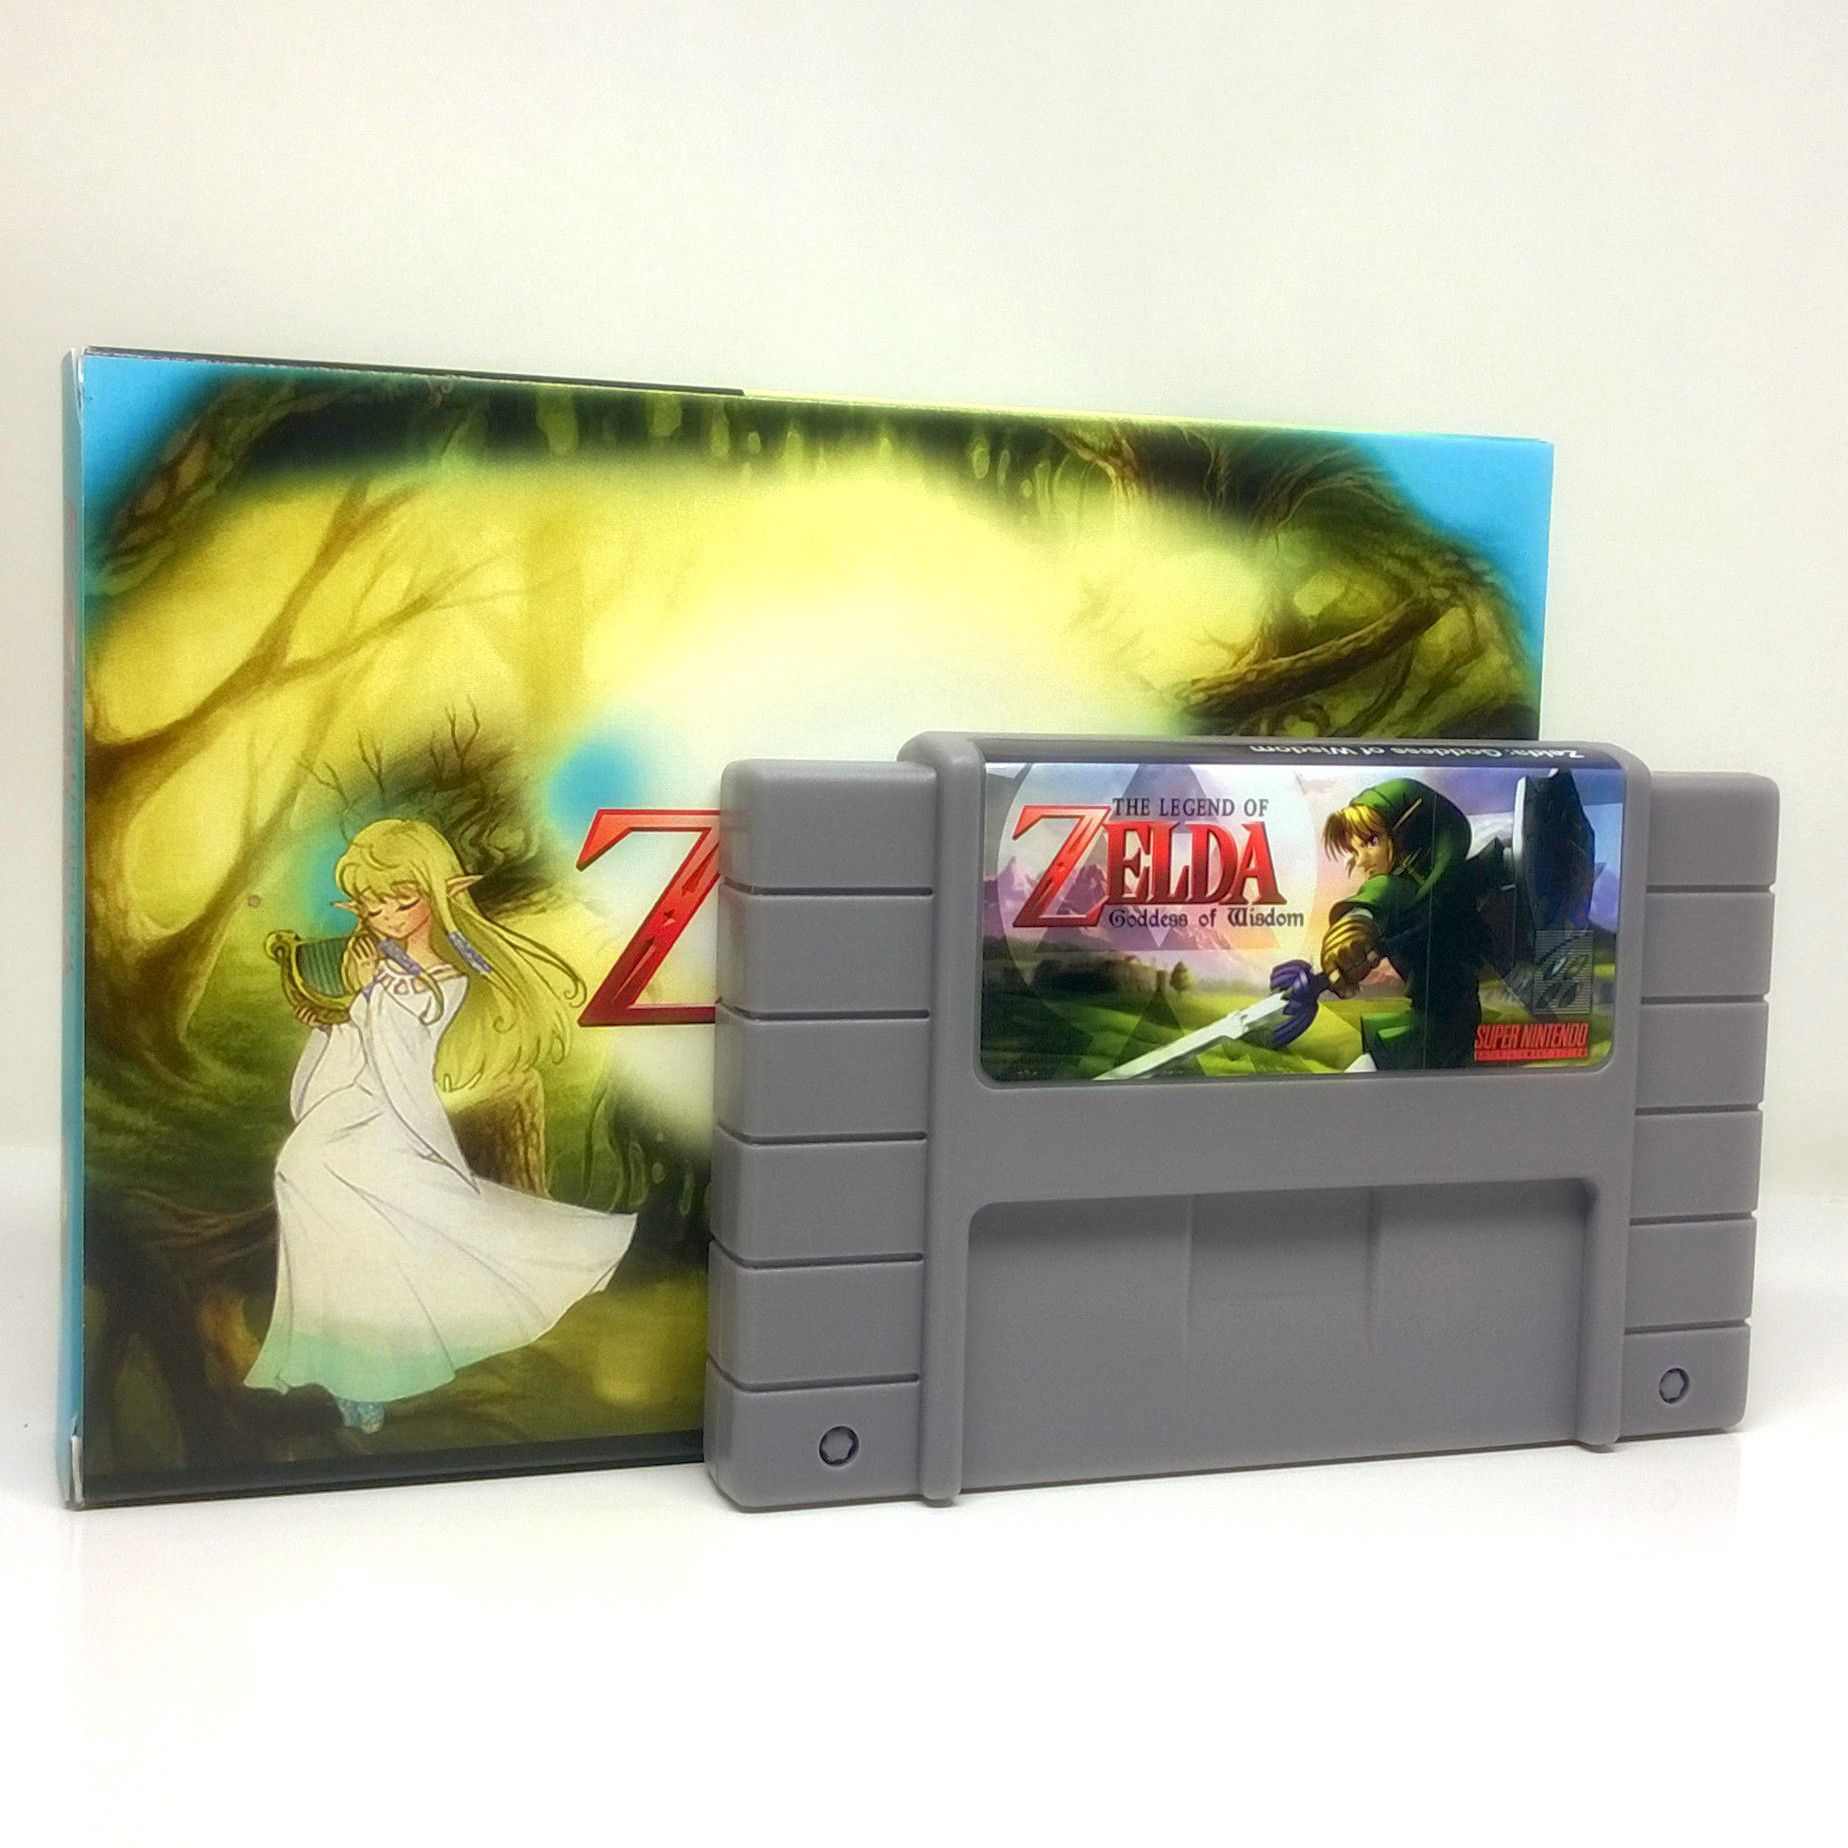 Description The Legend of Zelda: Goddess of Wisdom SNES Super Nintendo game, includes box and game cartridge only. Cleaned, tested and comes with a FREE box protector! Another great fan-made game base